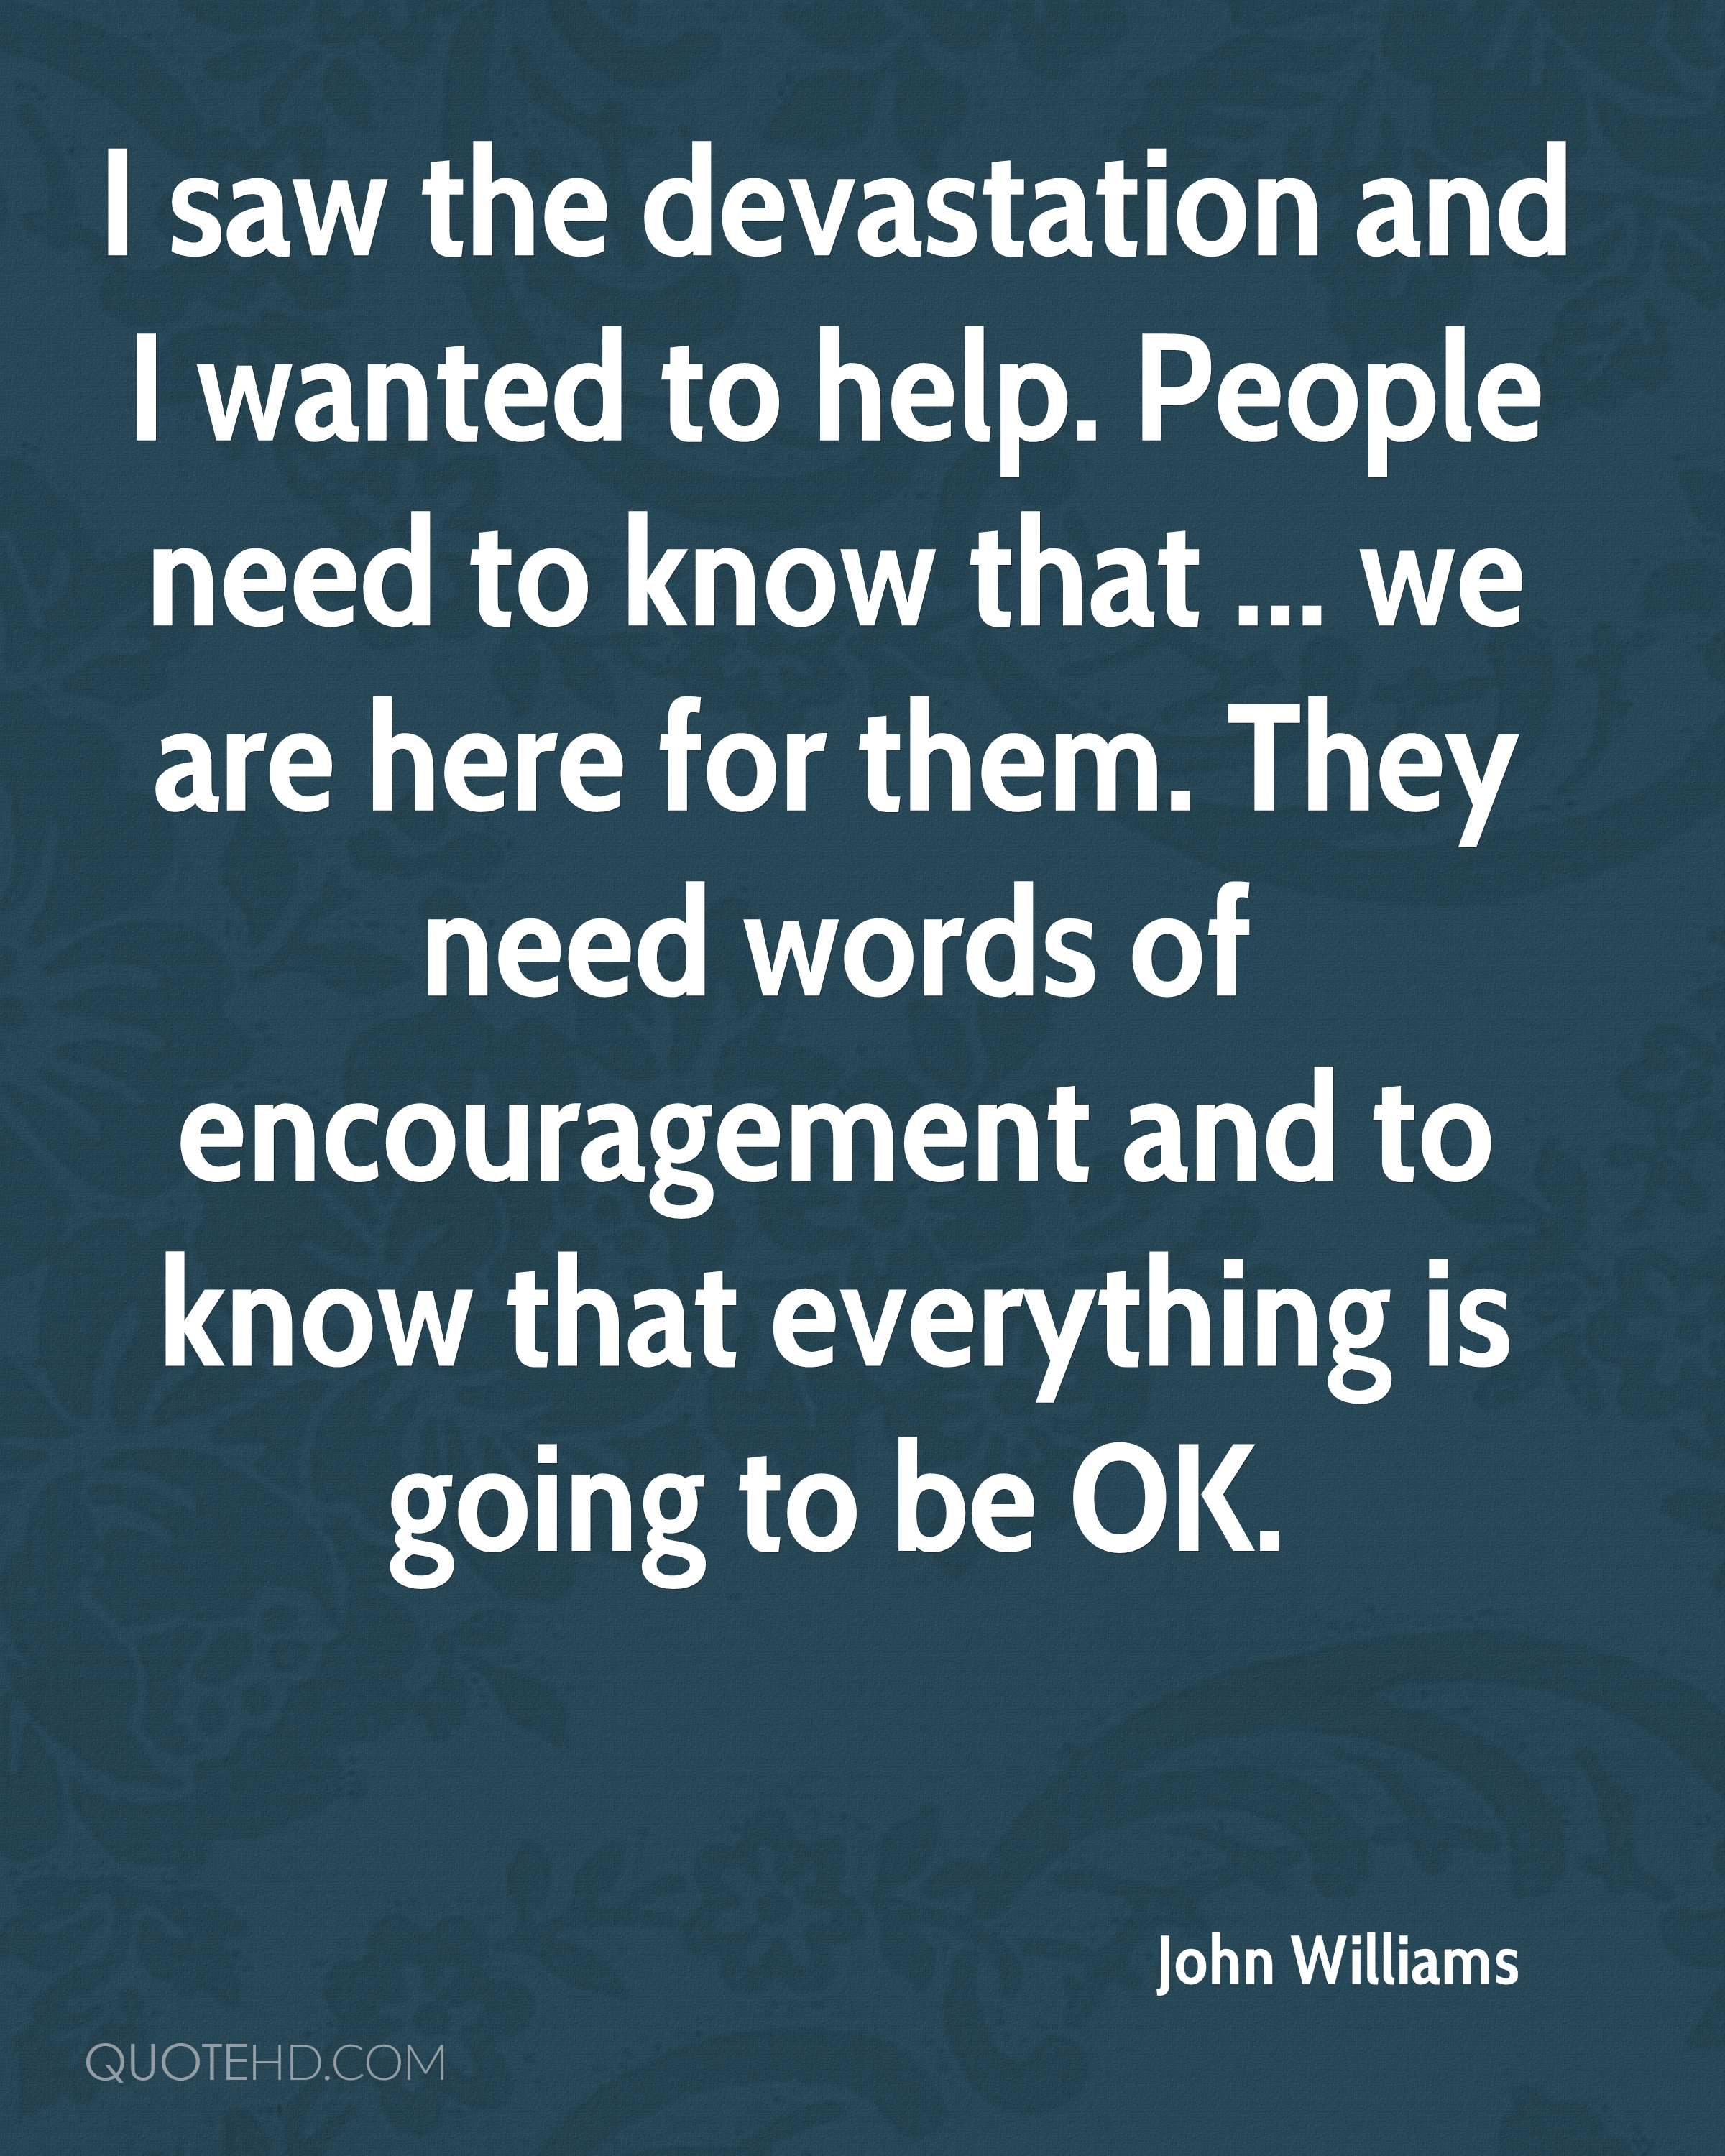 I saw the devastation and I wanted to help. People need to know that ... we are here for them. They need words of encouragement and to know that everything is going to be OK.